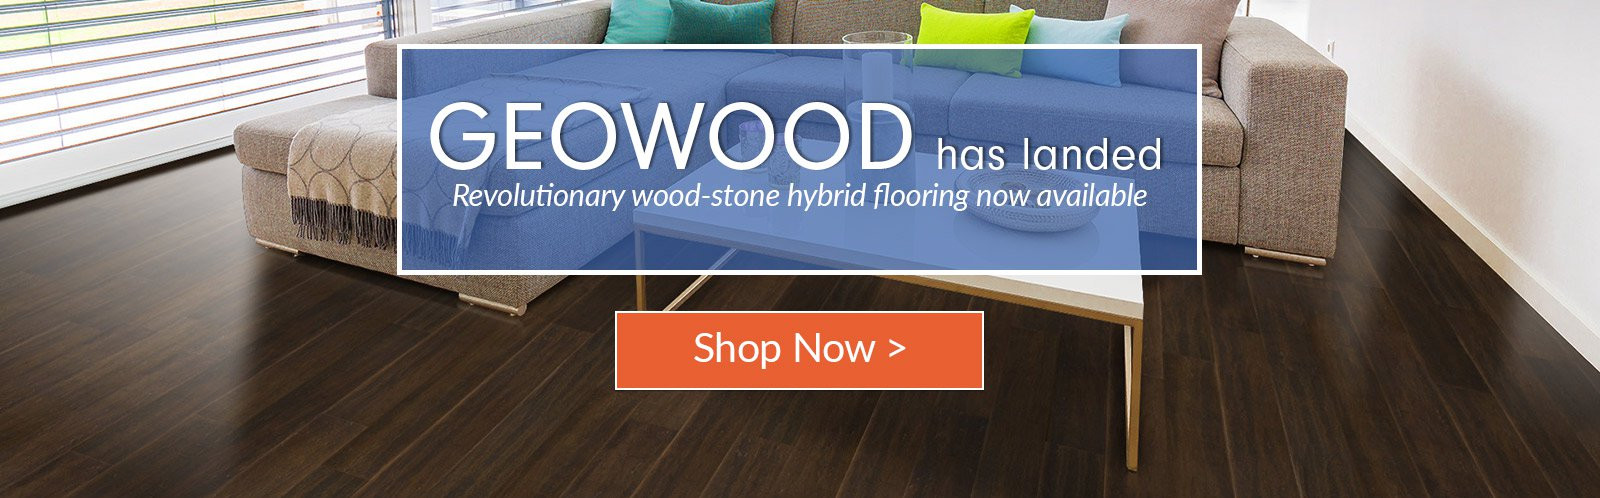 hardwood floor refinishing utah county of green building construction materials and home decor cali bamboo inside geowood launch homepage slider